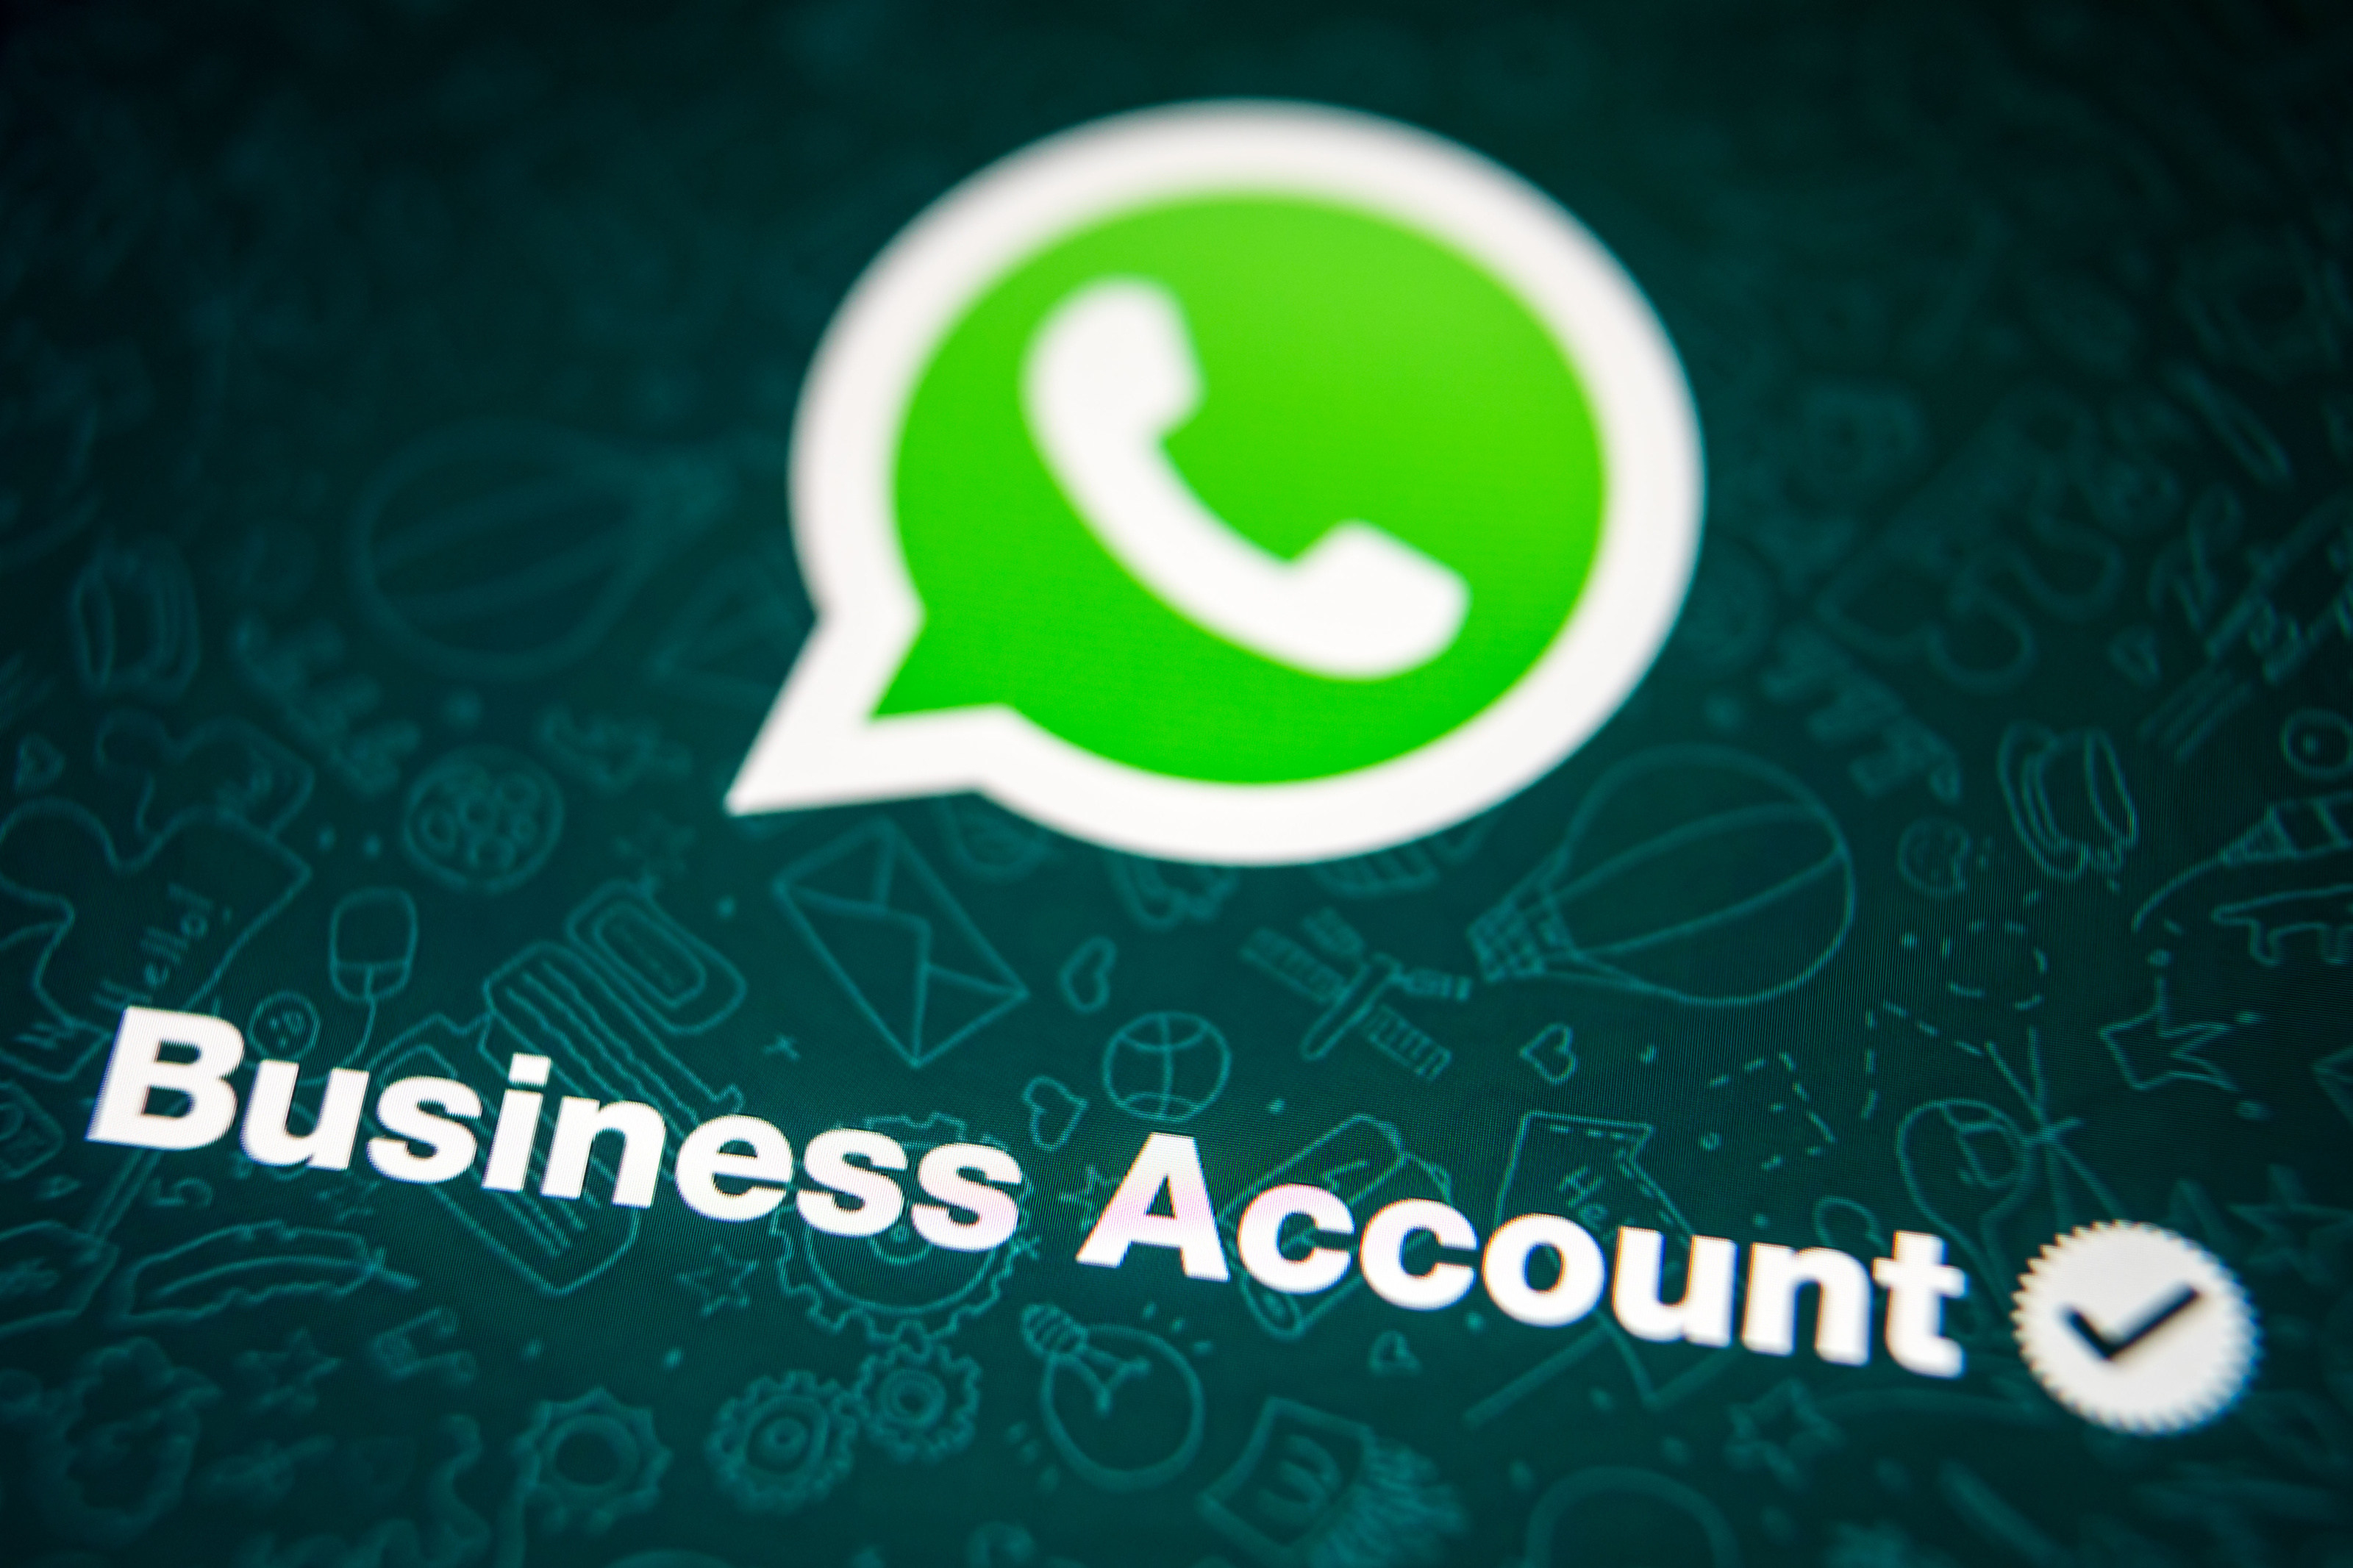 WhatsApp Business account tips and tools